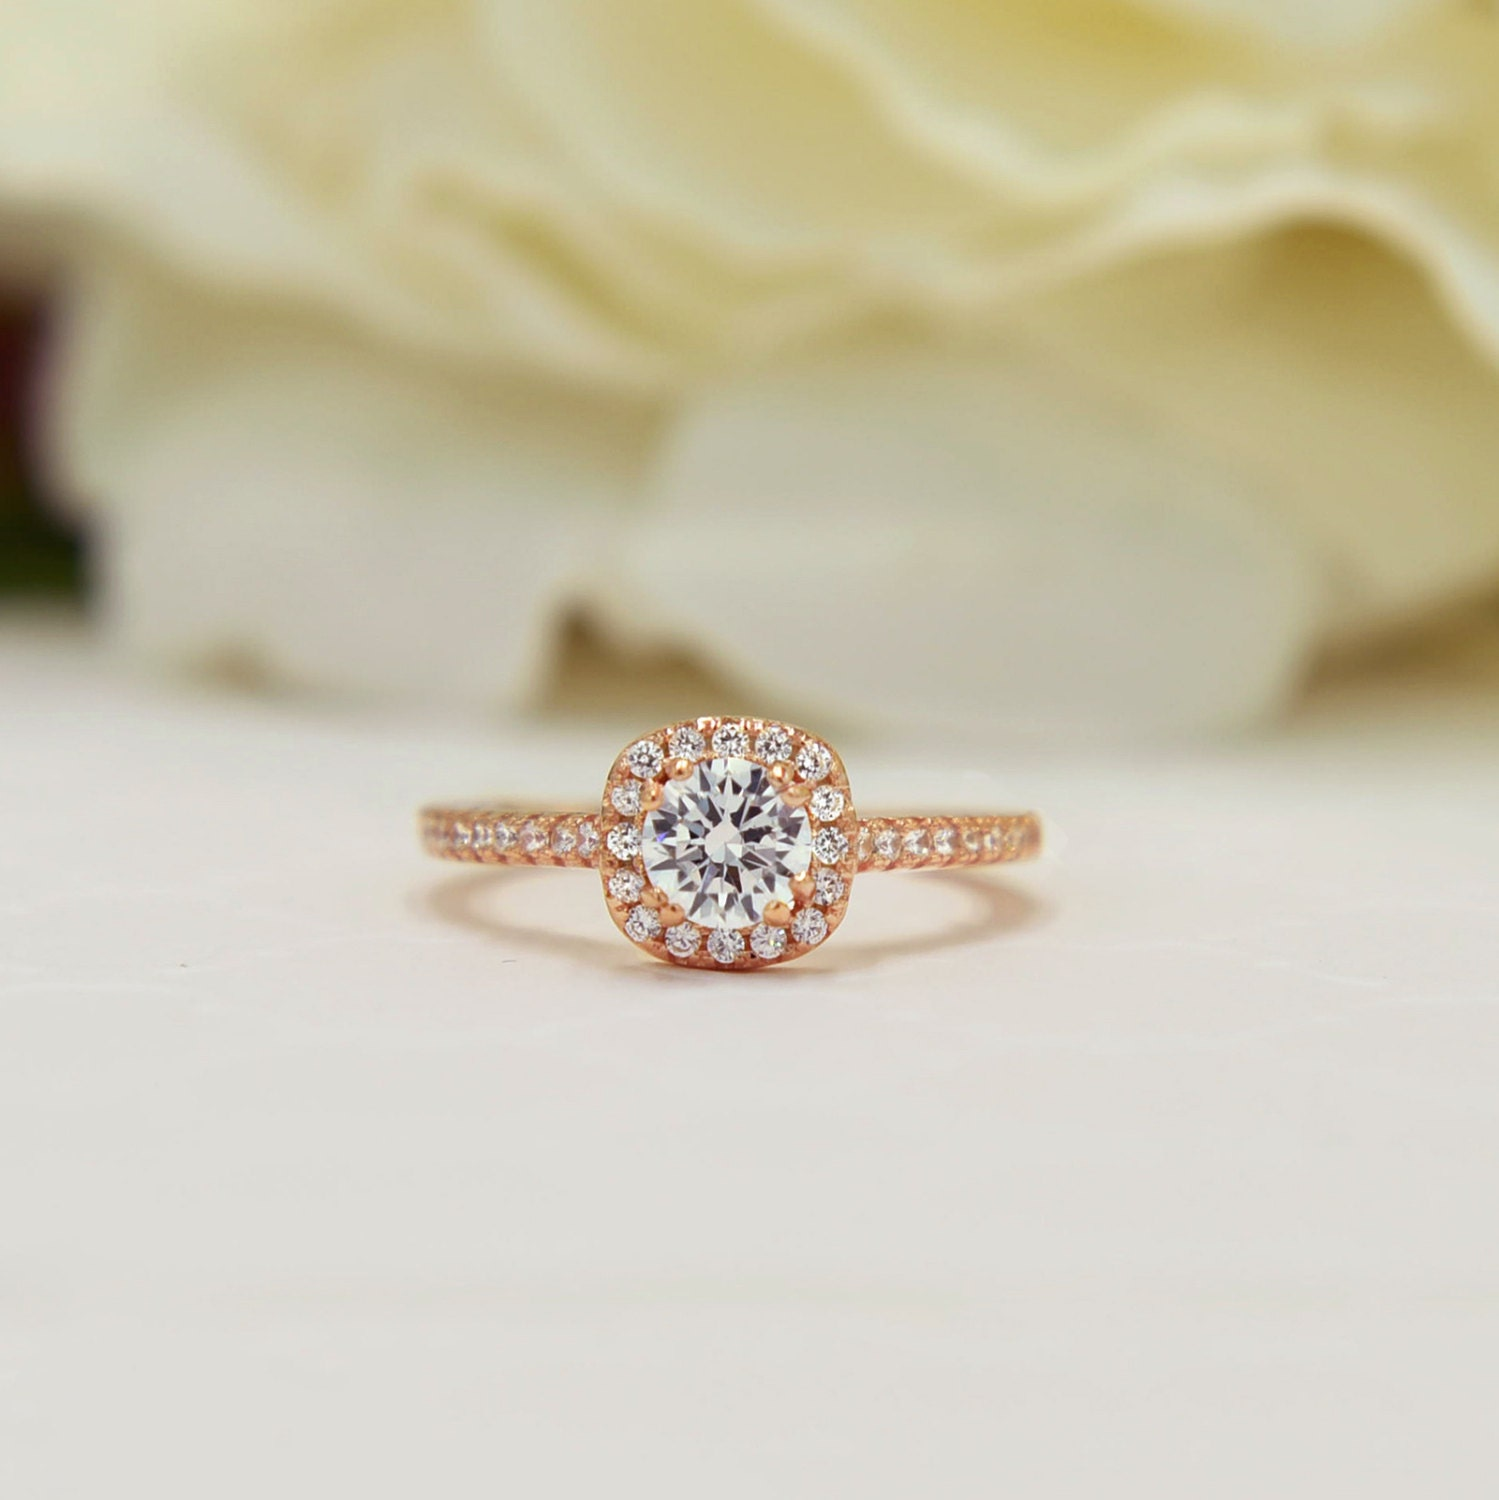 piece princess wedding alternative rose fullxfull il jcua square clear rings listing colorless engagement set gold ring bridal halo